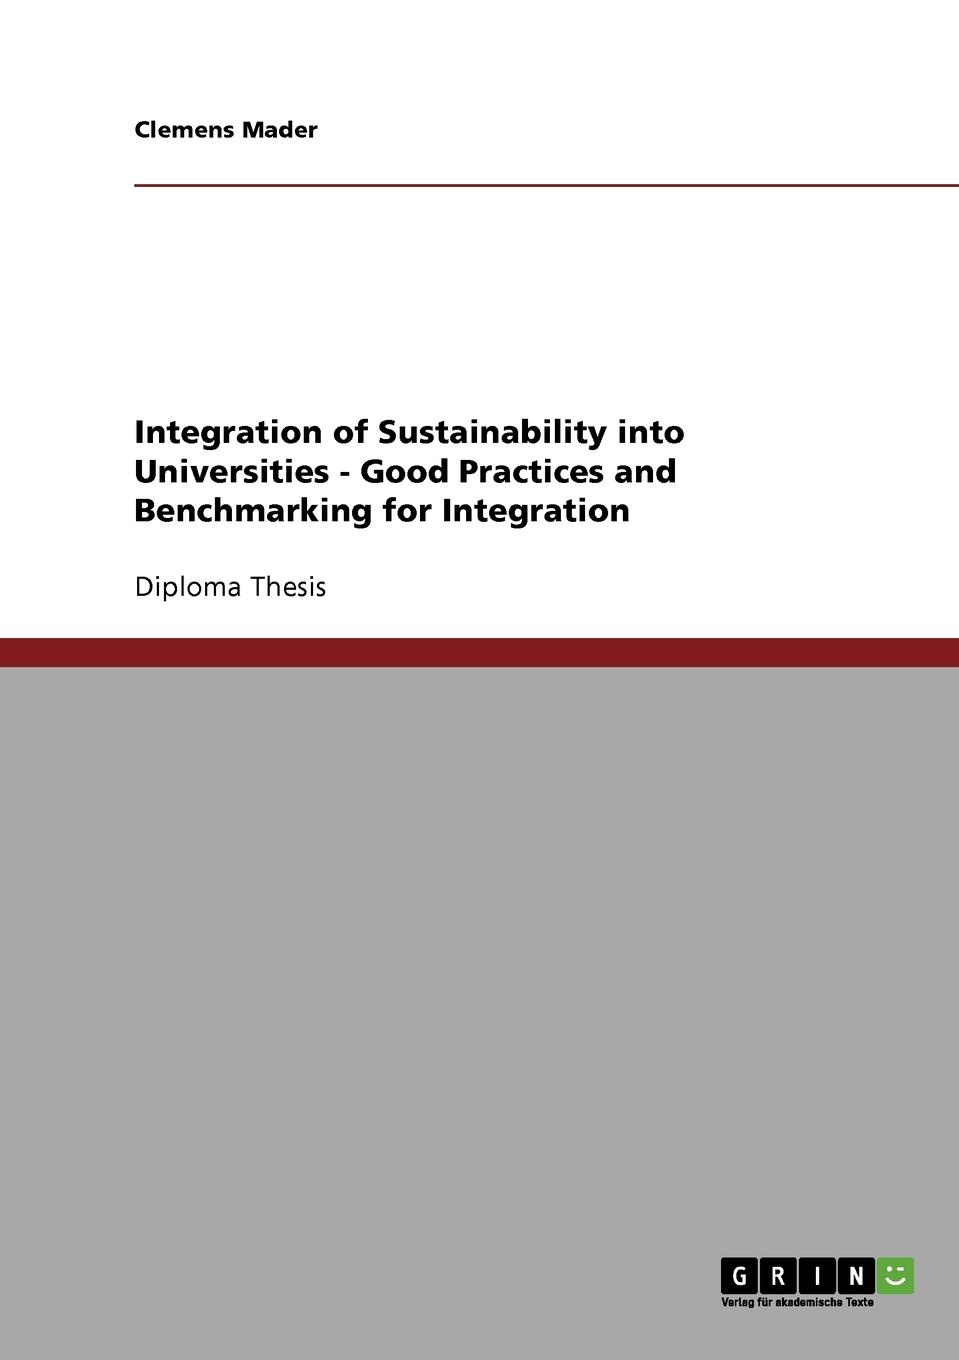 Clemens Mader Integration of Sustainability into Universities - Good Practices and Benchmarking for Integration clemens mader integration of sustainability into universities good practices and benchmarking for integration